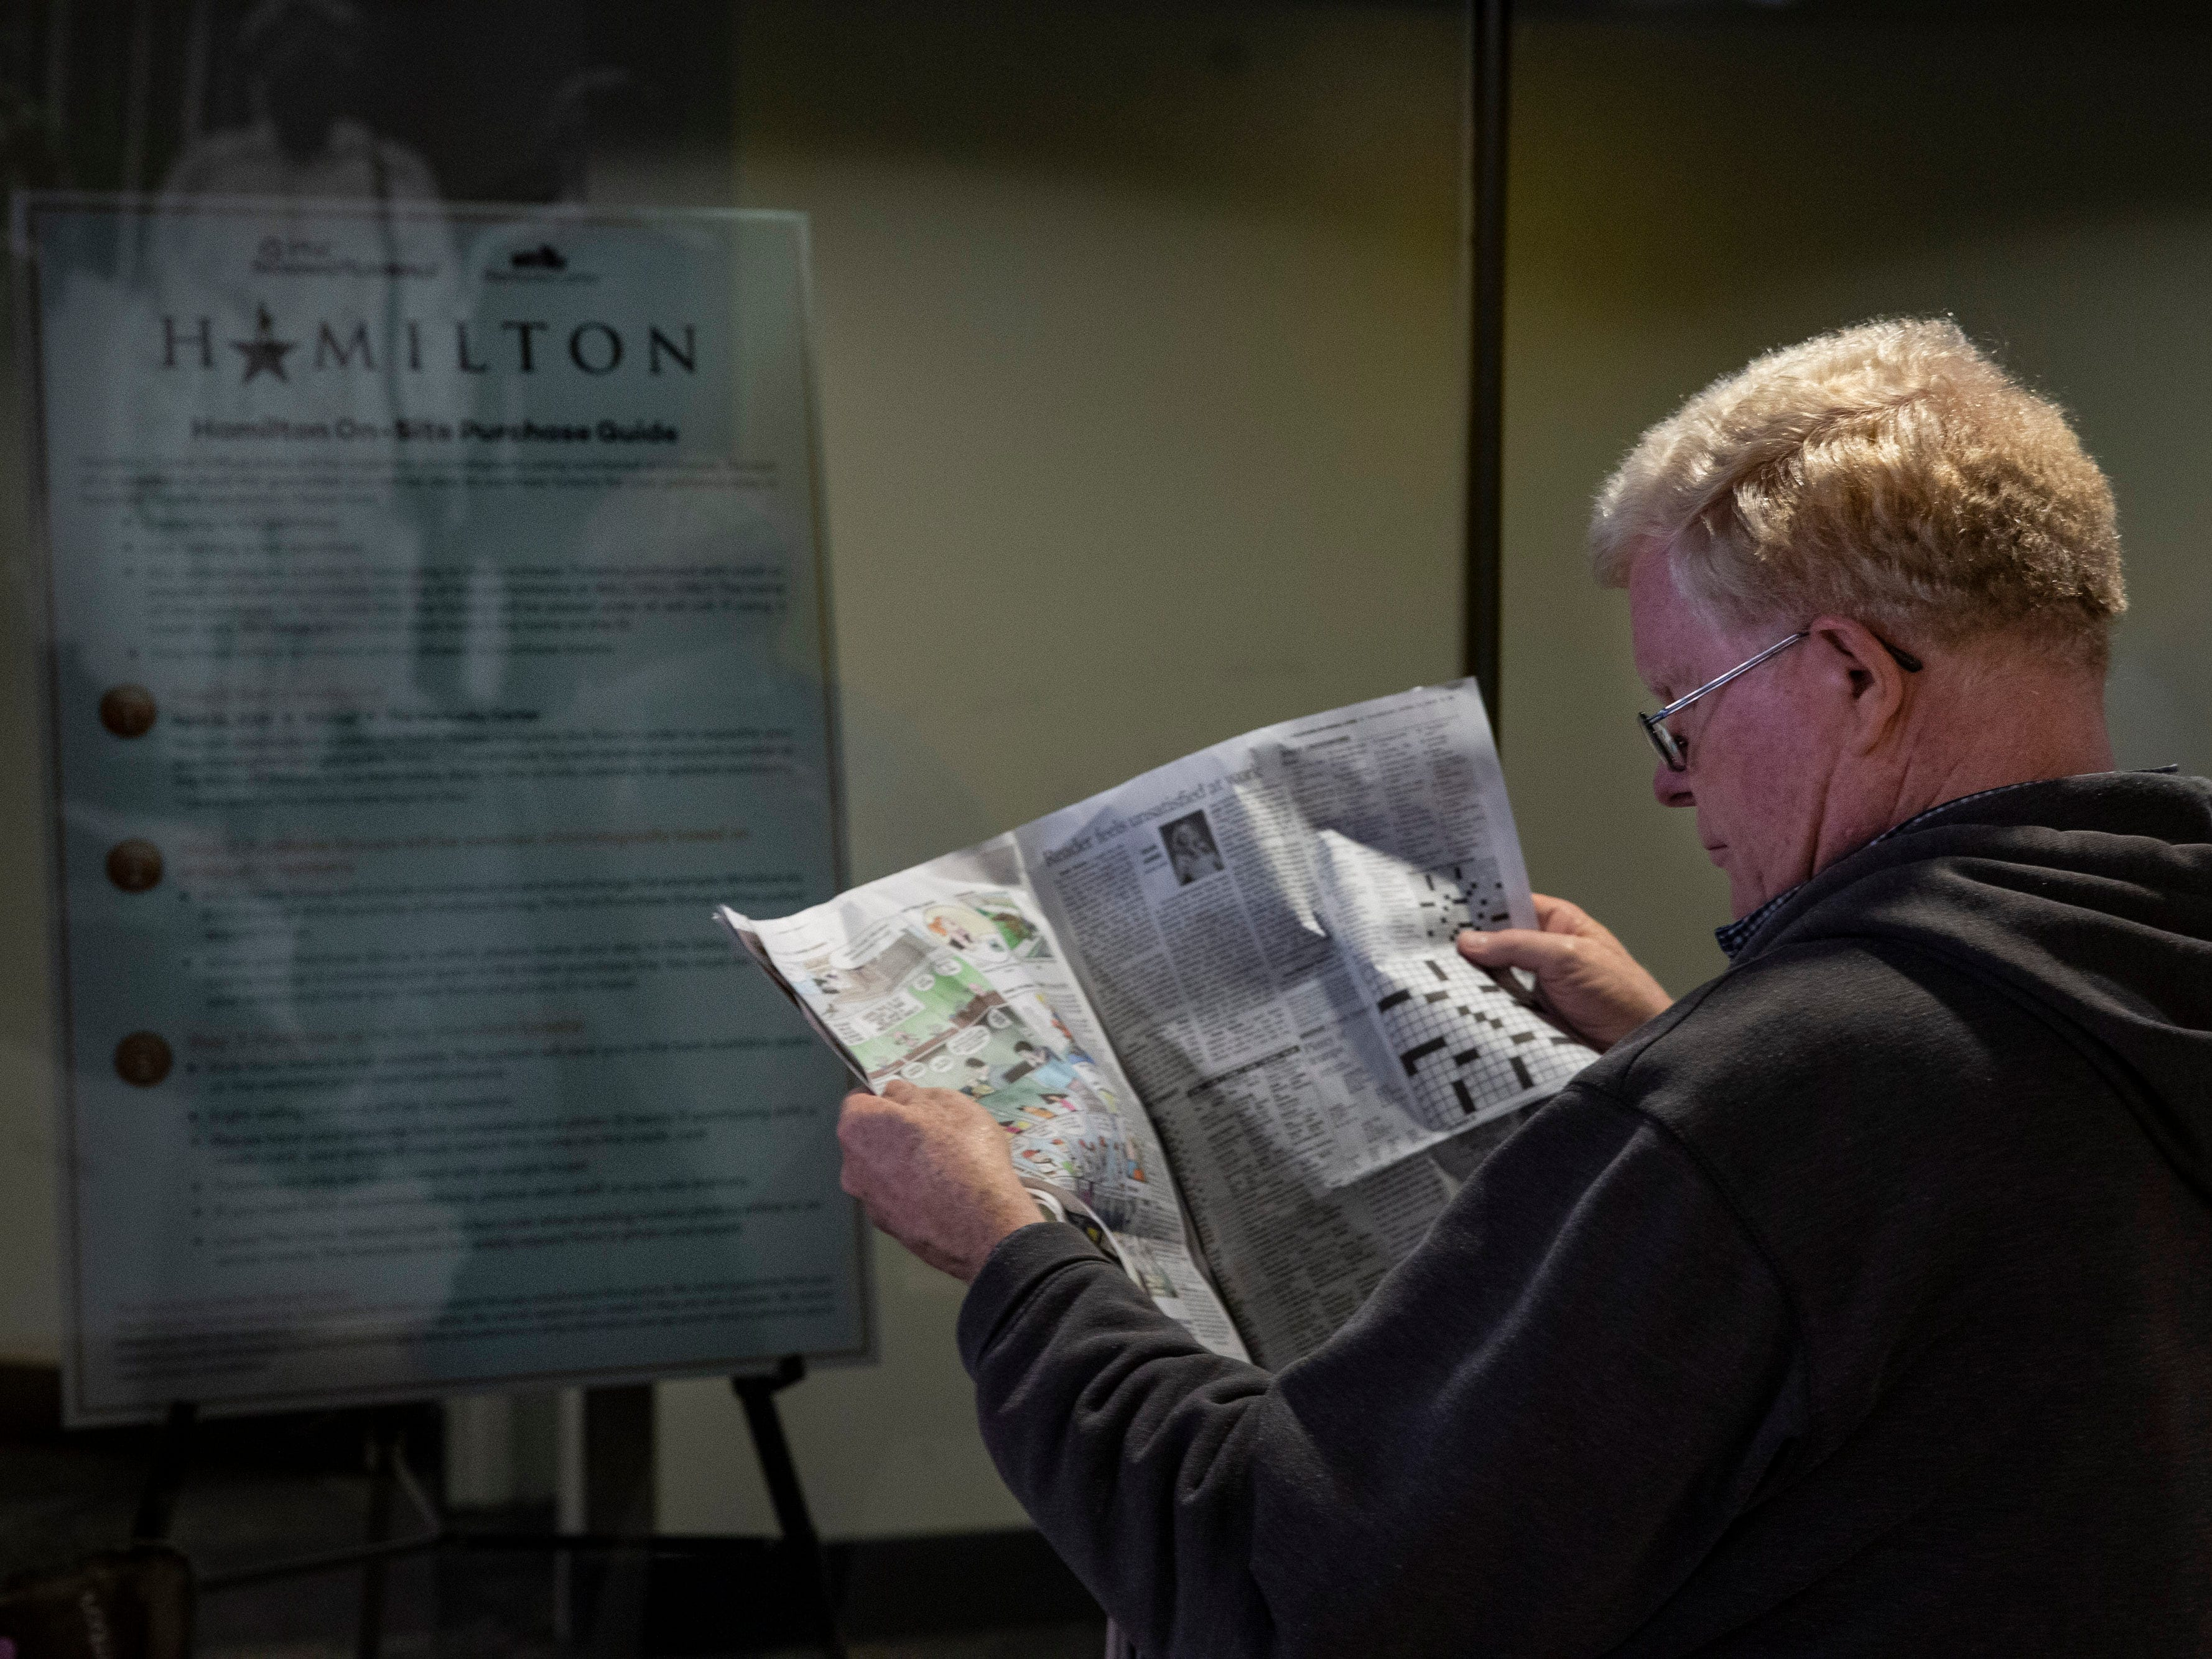 """John Hayens read the Courier Journal while waiting in line for tickets to the play, """"Hamilton,"""" at the Kentucky Center for the Arts. Haynes arrived at the center at 6:45 to join the line of people. April 11, 2019."""